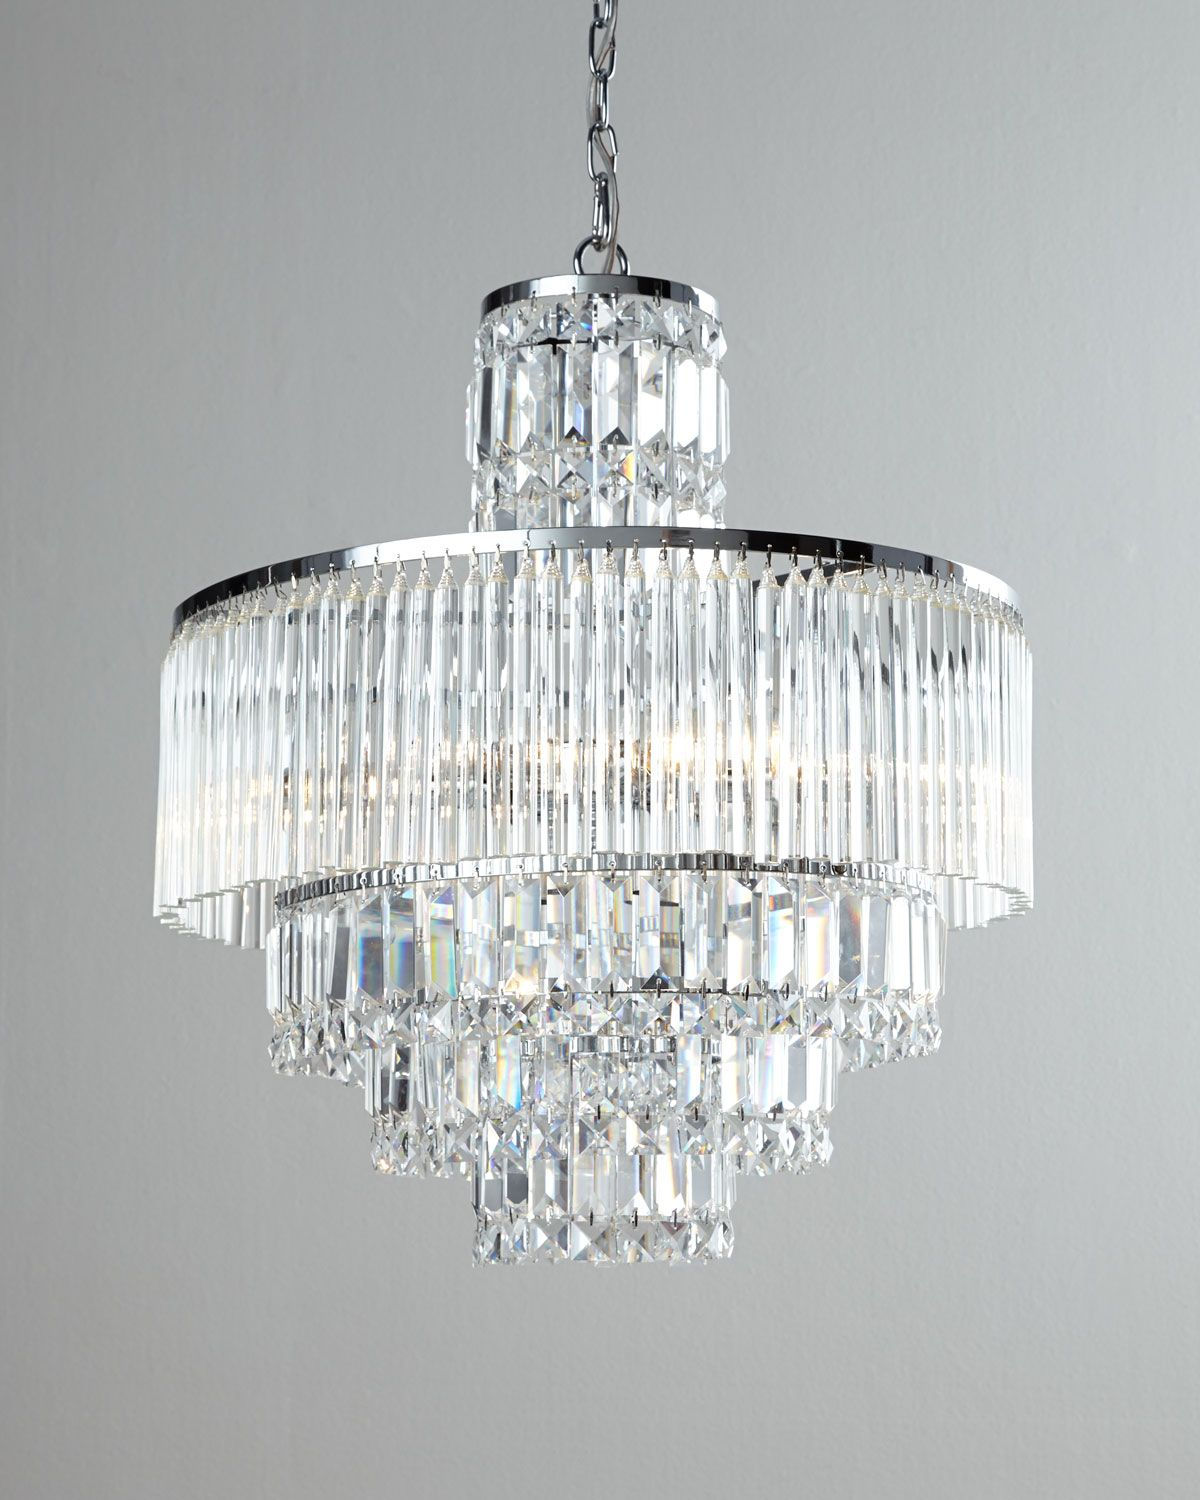 Rossborough 8-Light Crystal Chandelier | New House Bath N with regard to Mcknight 9-Light Chandeliers (Image 26 of 30)